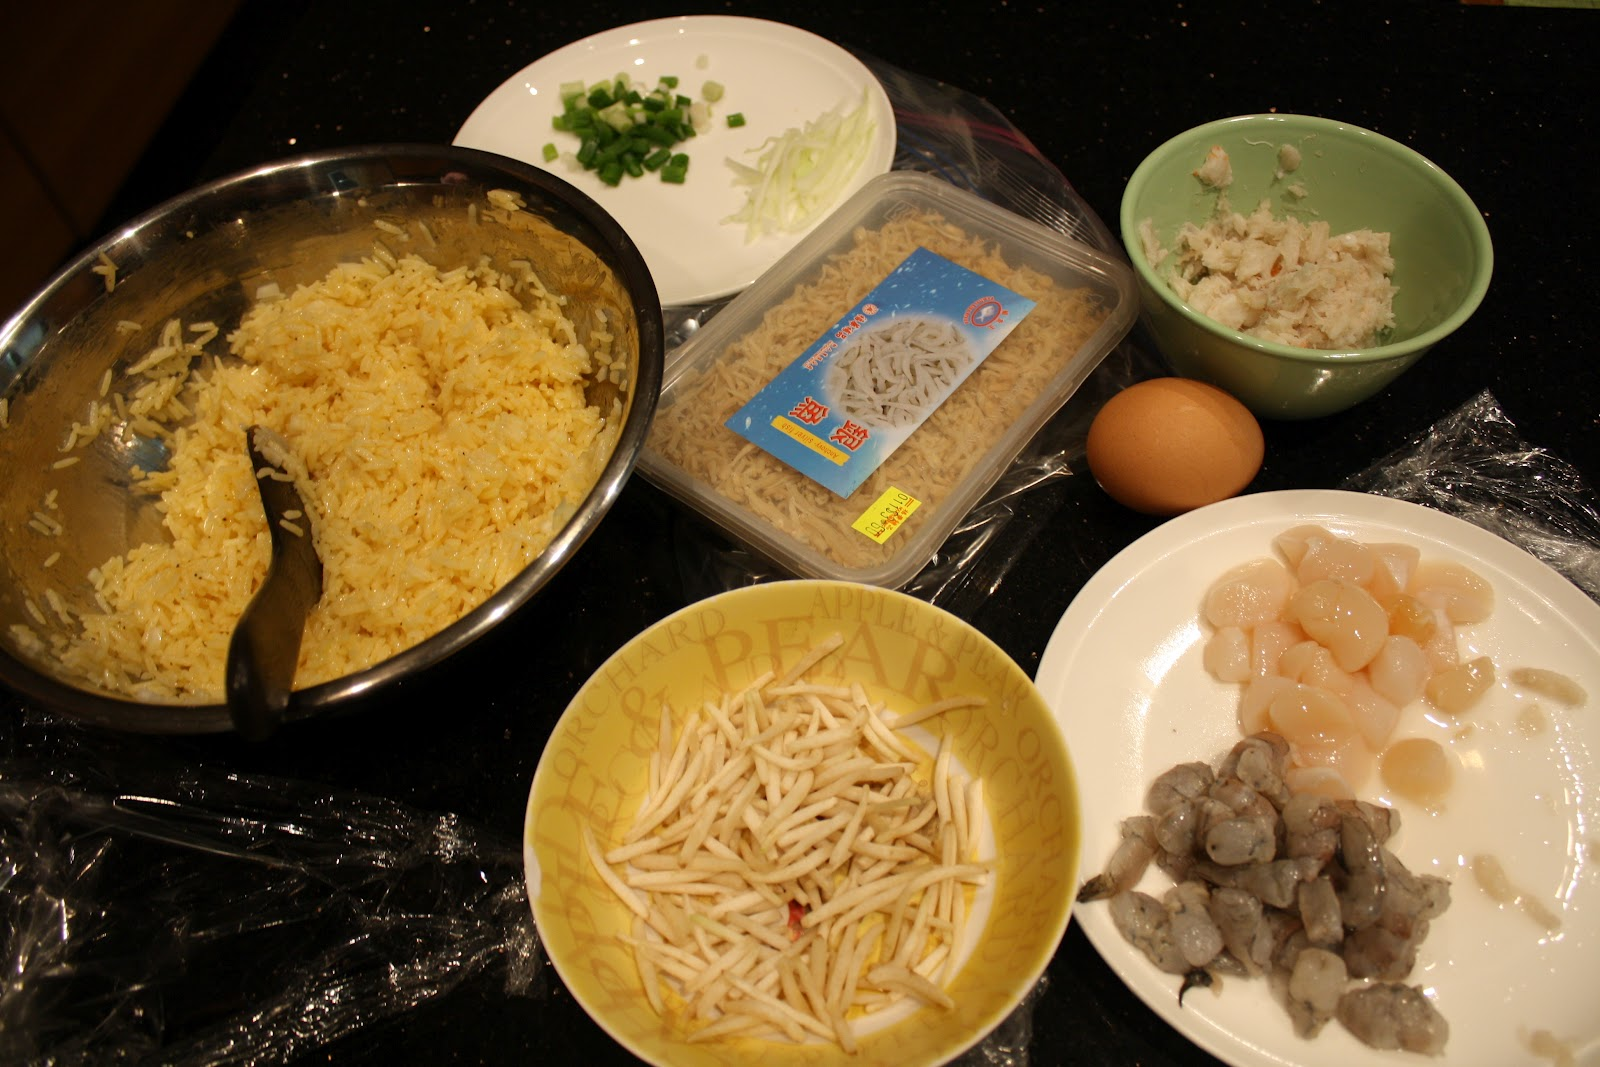 The food bairn pregnant woman fried rice and grilled pork belly fry some oil in a frying pan and cook the scallops the shrimp and the crab meat if the crab meat becomes too dry add some more oil ccuart Image collections